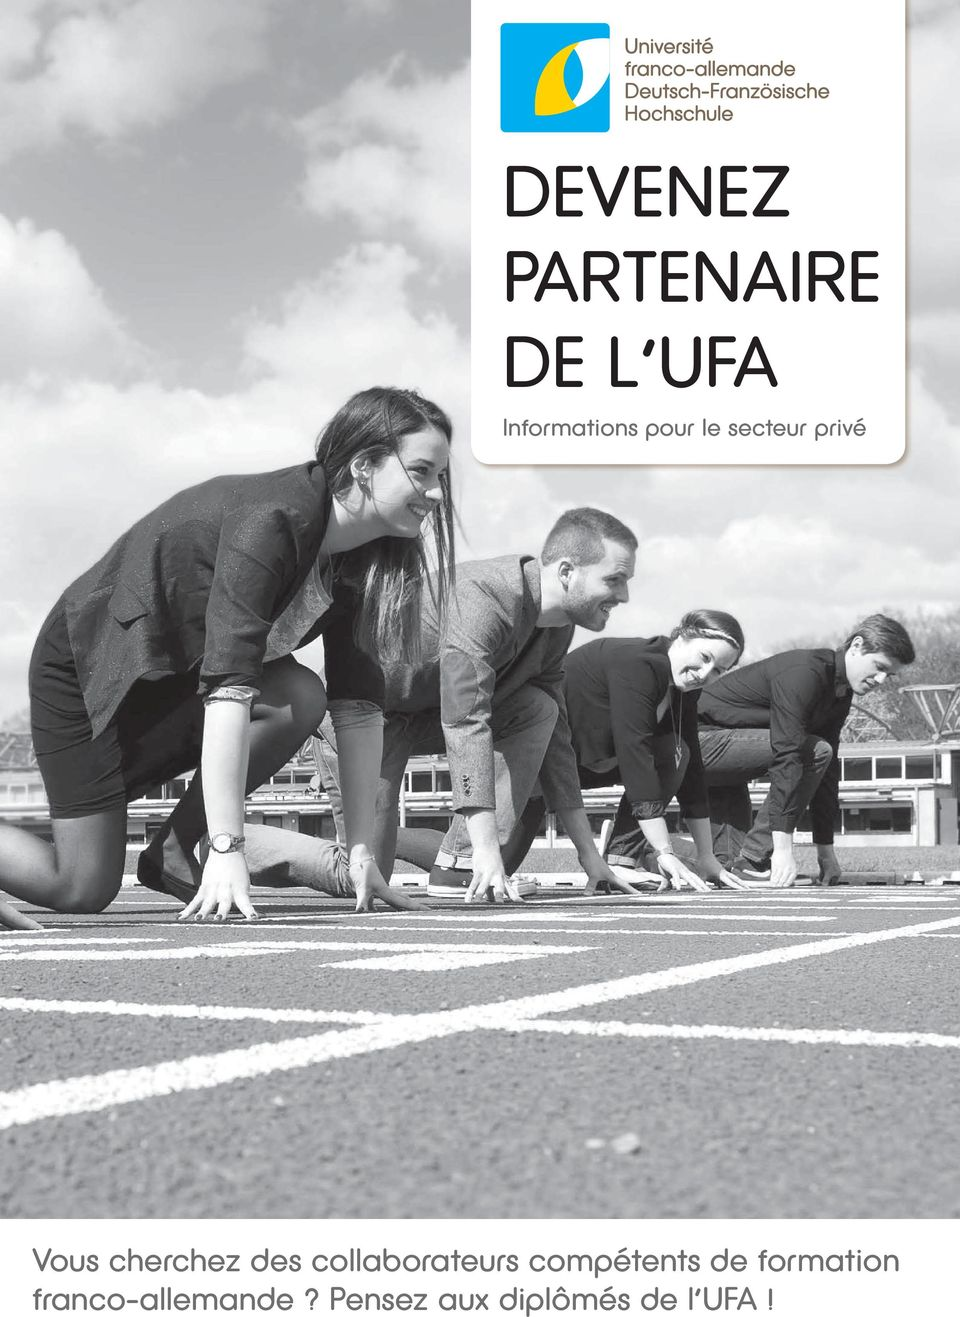 collaborateurs compétents de formation